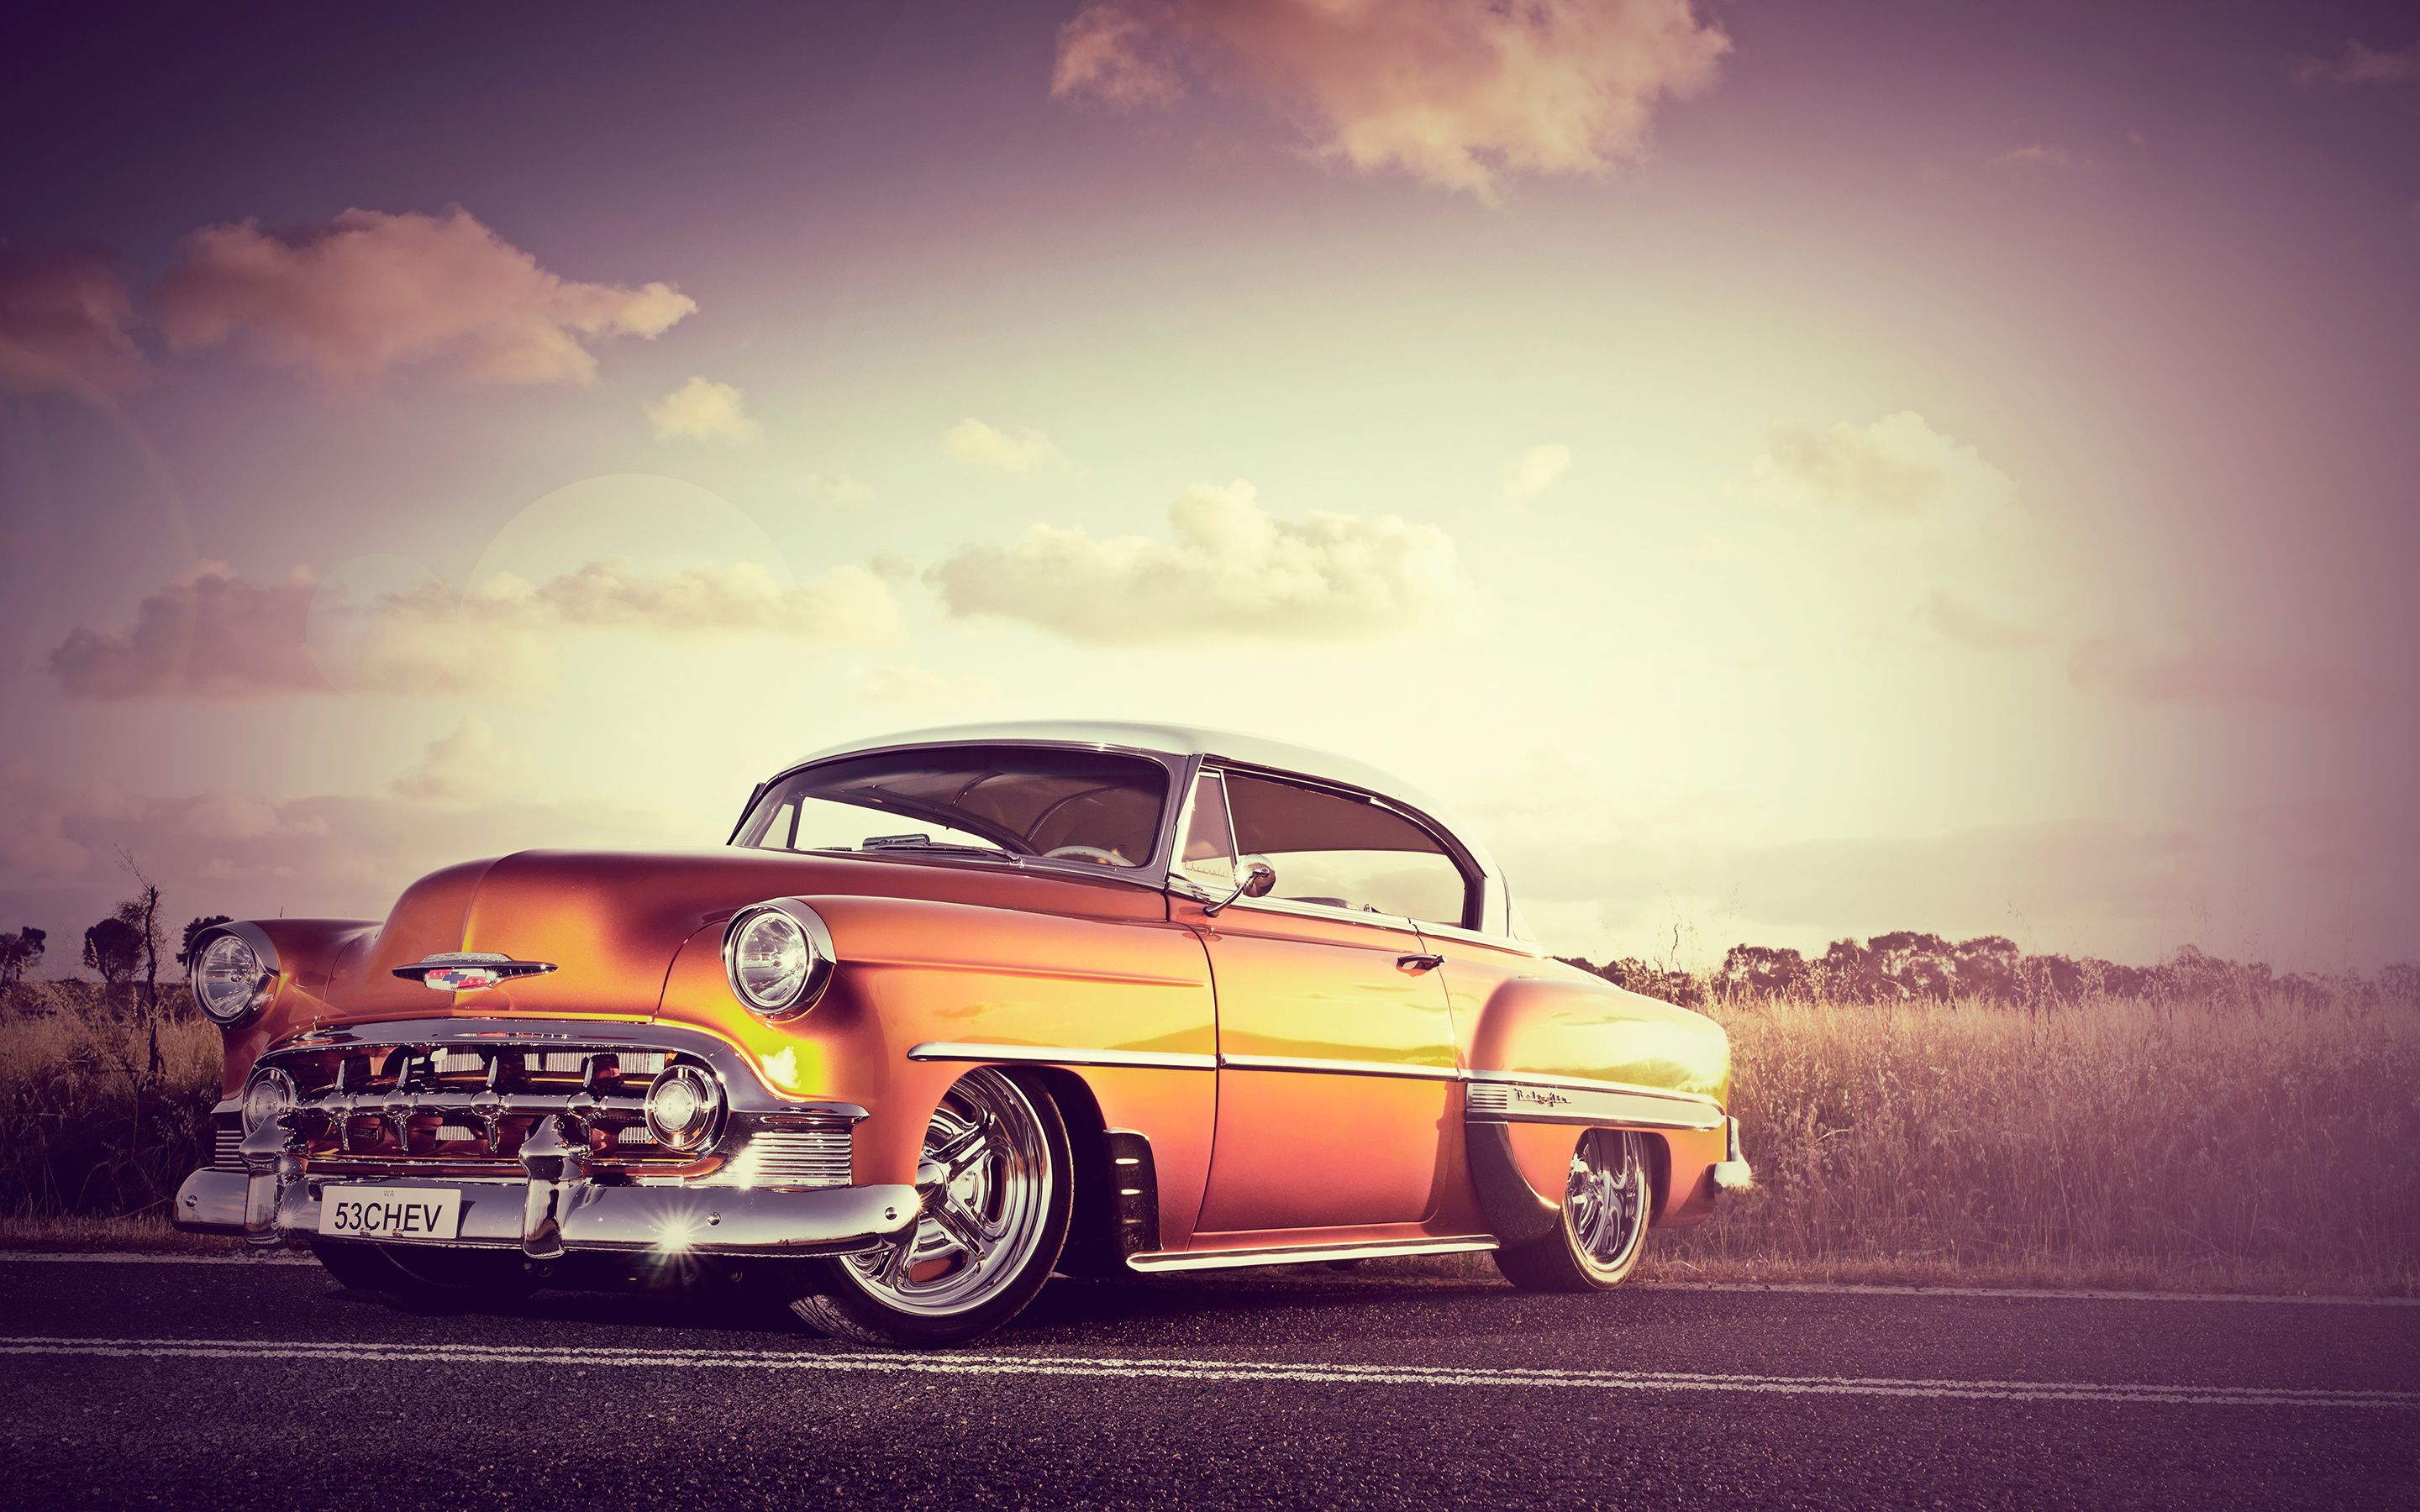 Classic Chevrolet Wallpaper For Windows Ocq Chevrolet Wallpaper